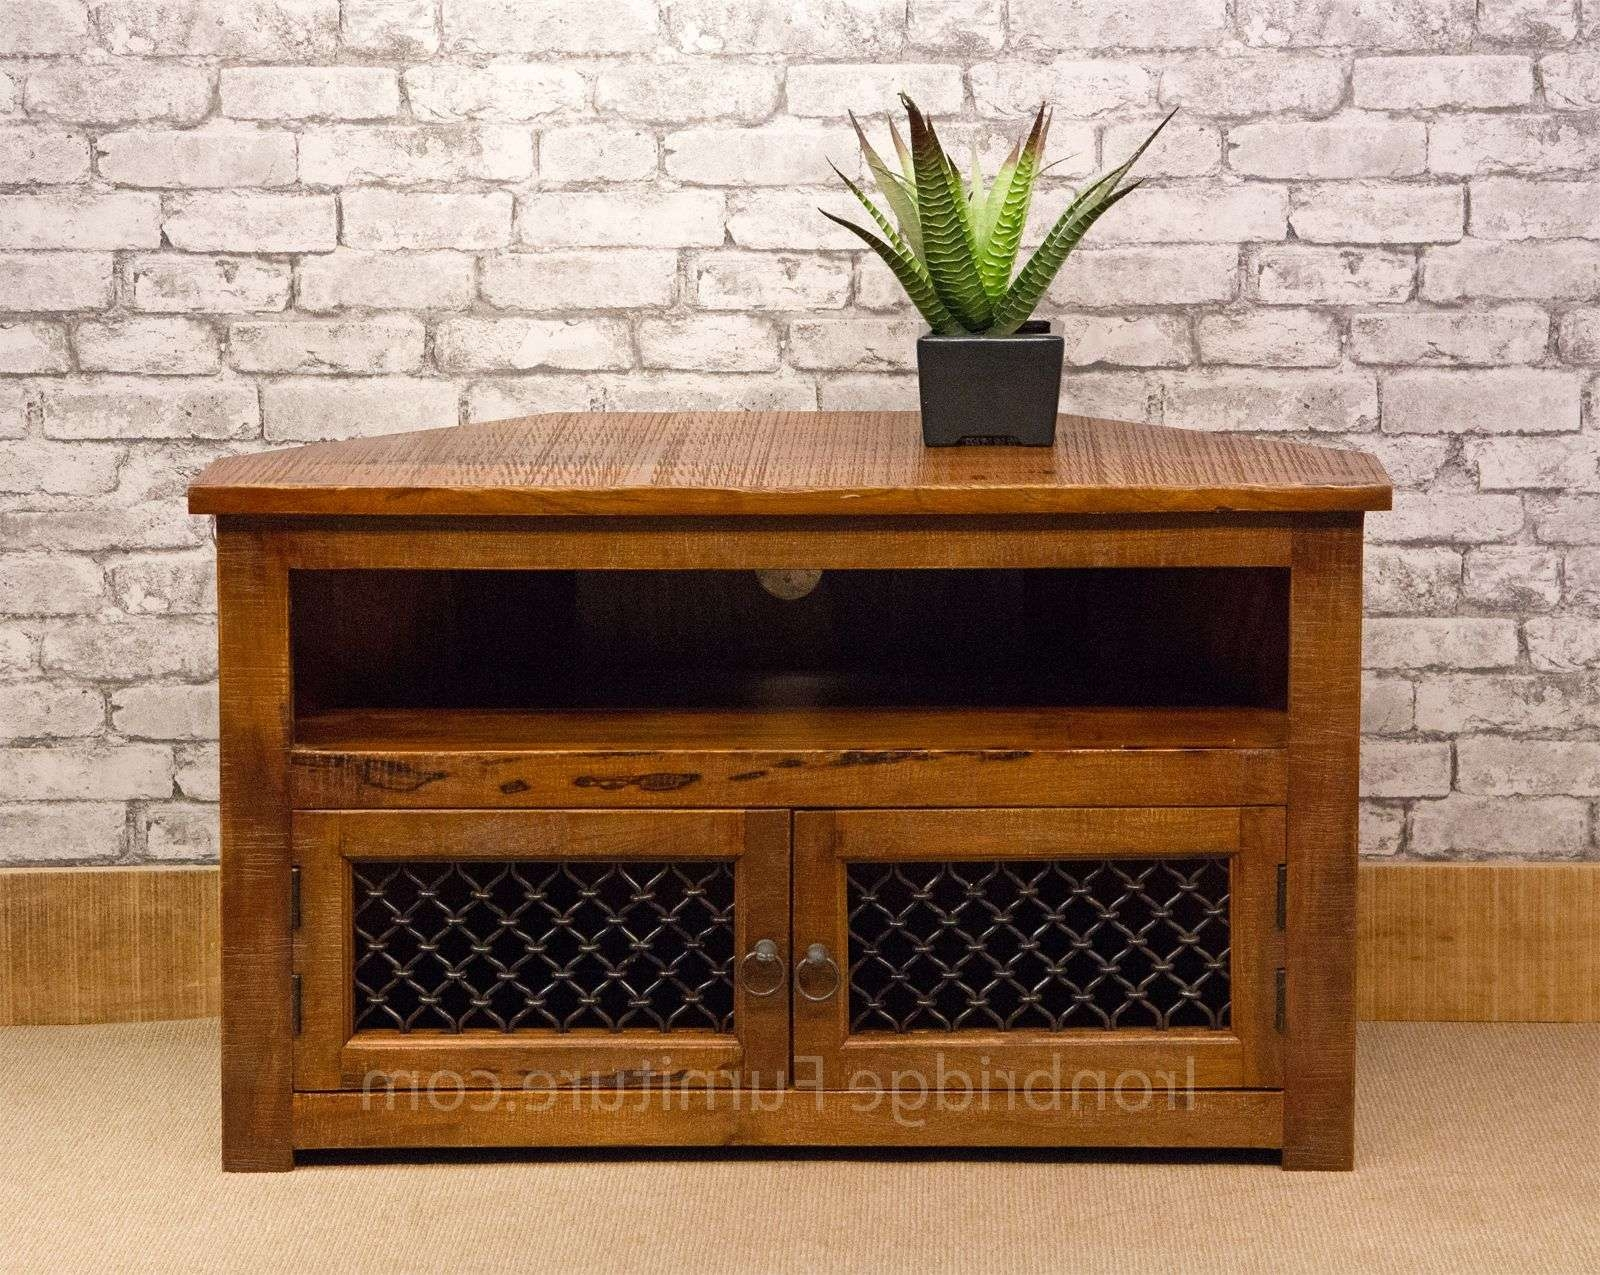 13 Jali Rustic Farm Corner Tv Stand 100Cm For 100Cm Tv Stands (Gallery 1 of 15)